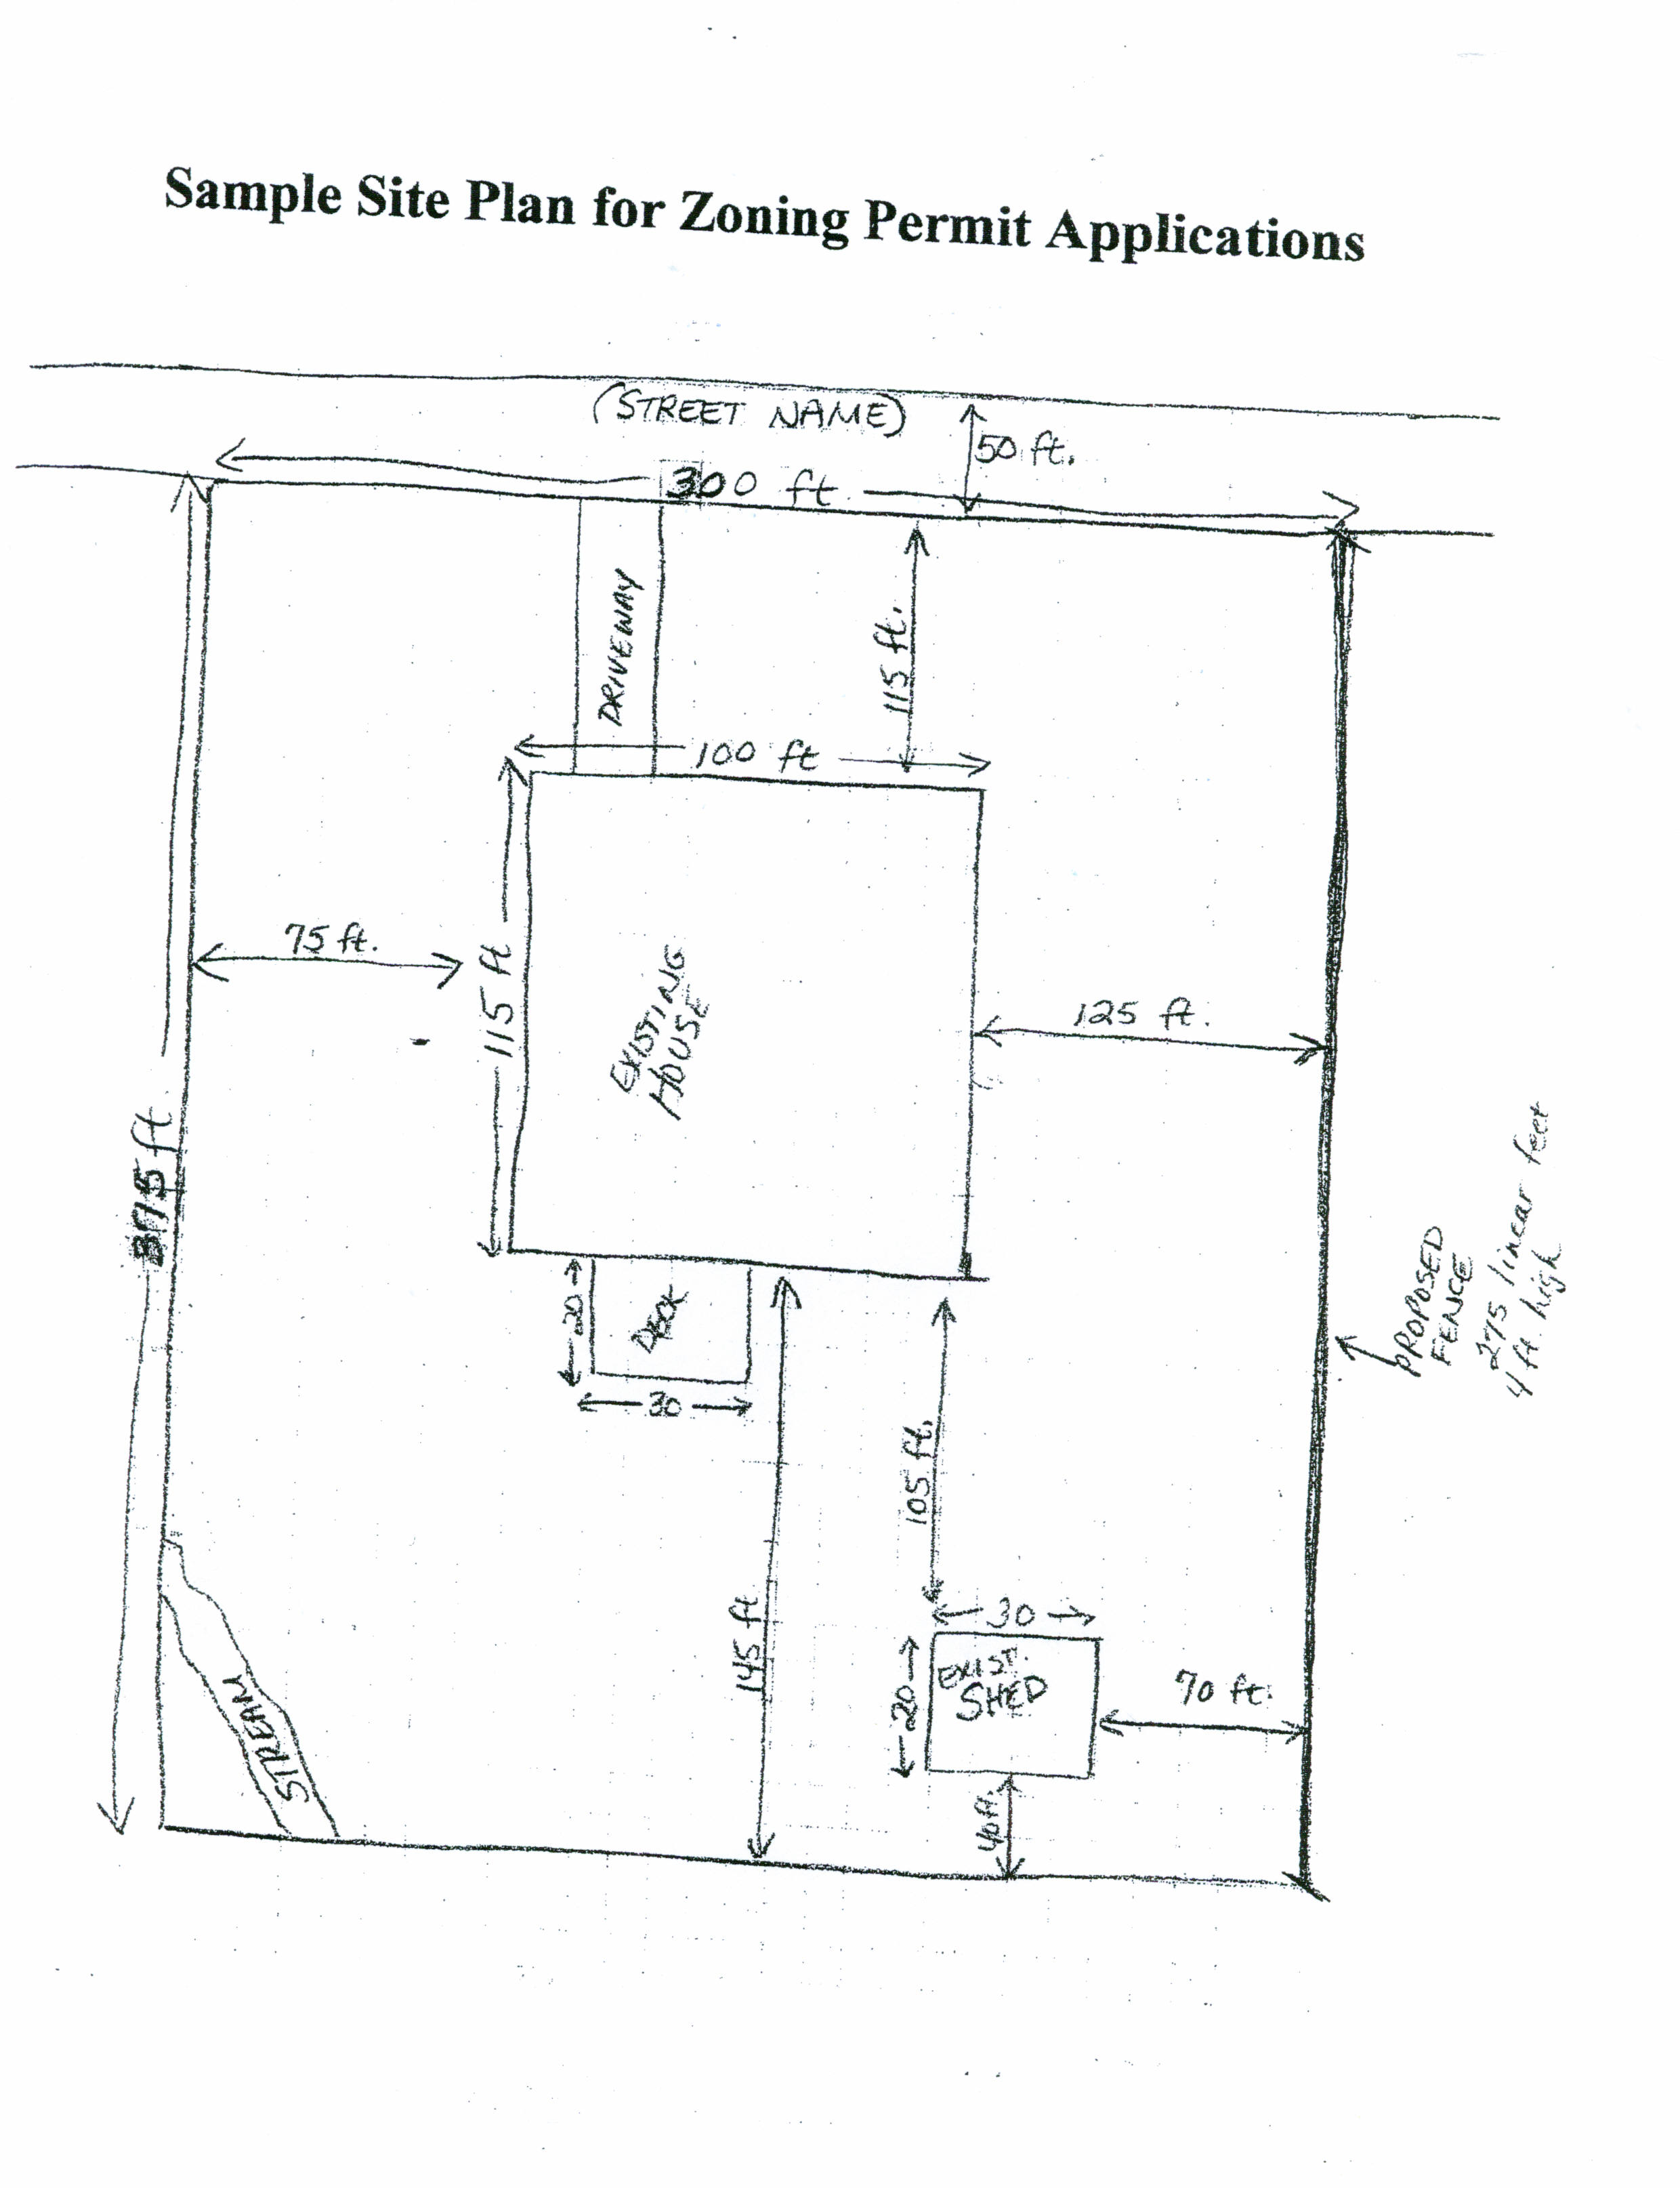 House Site Plan Example Pictures To Pin On Pinterest: residential building plan sample